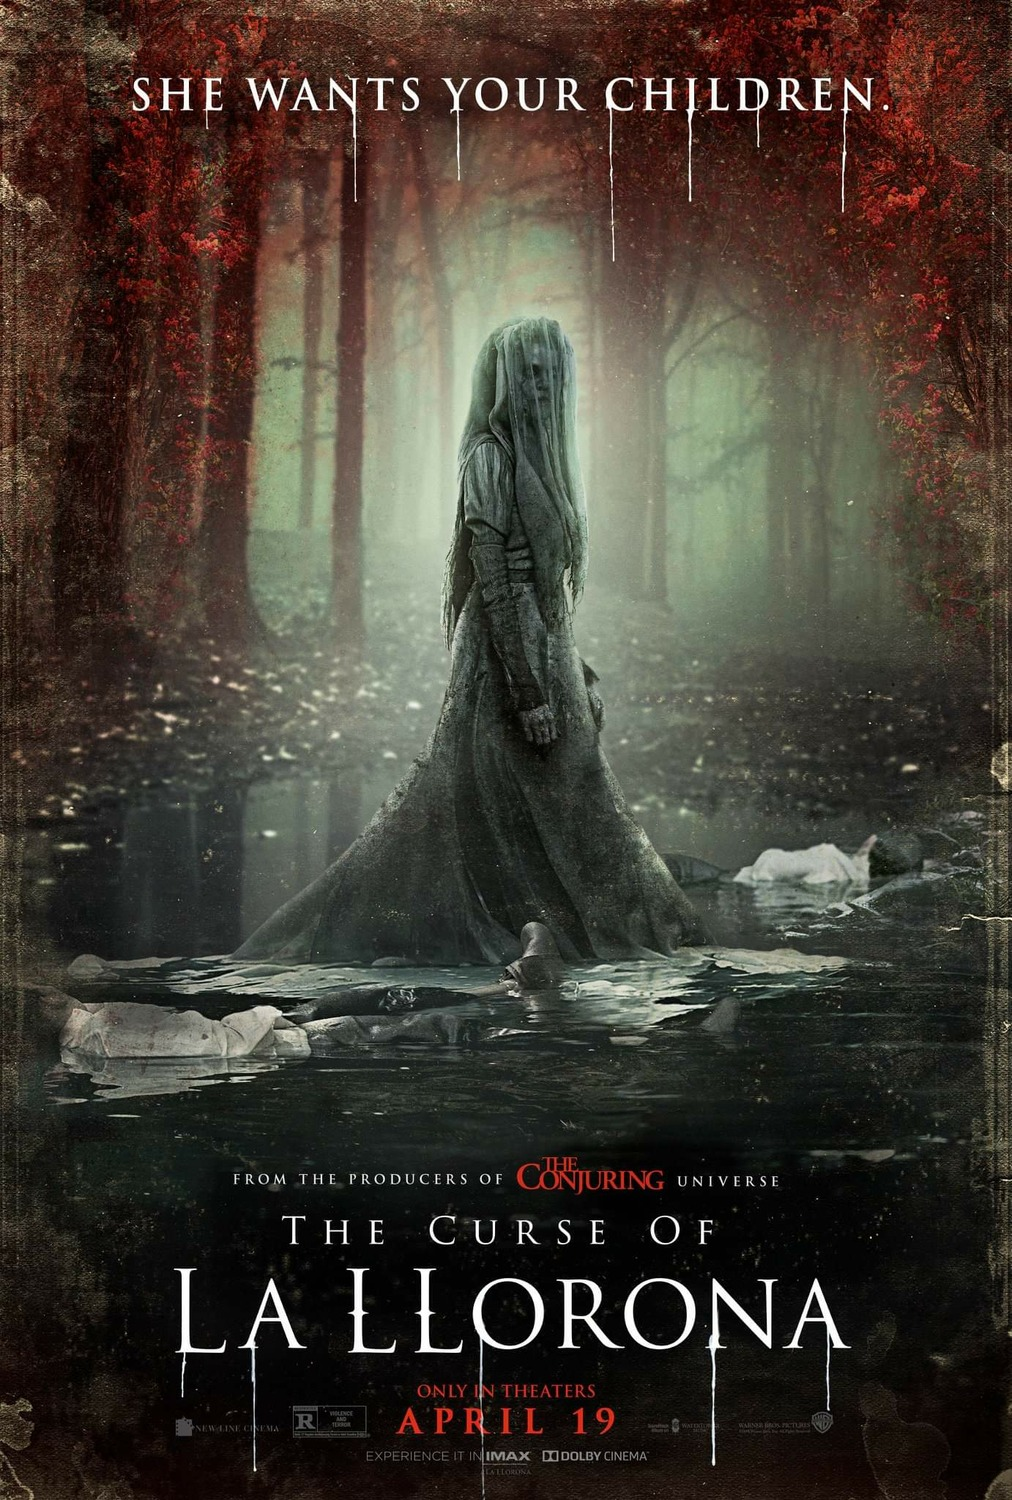 THE CURSE OF LA LLORONA (2019)